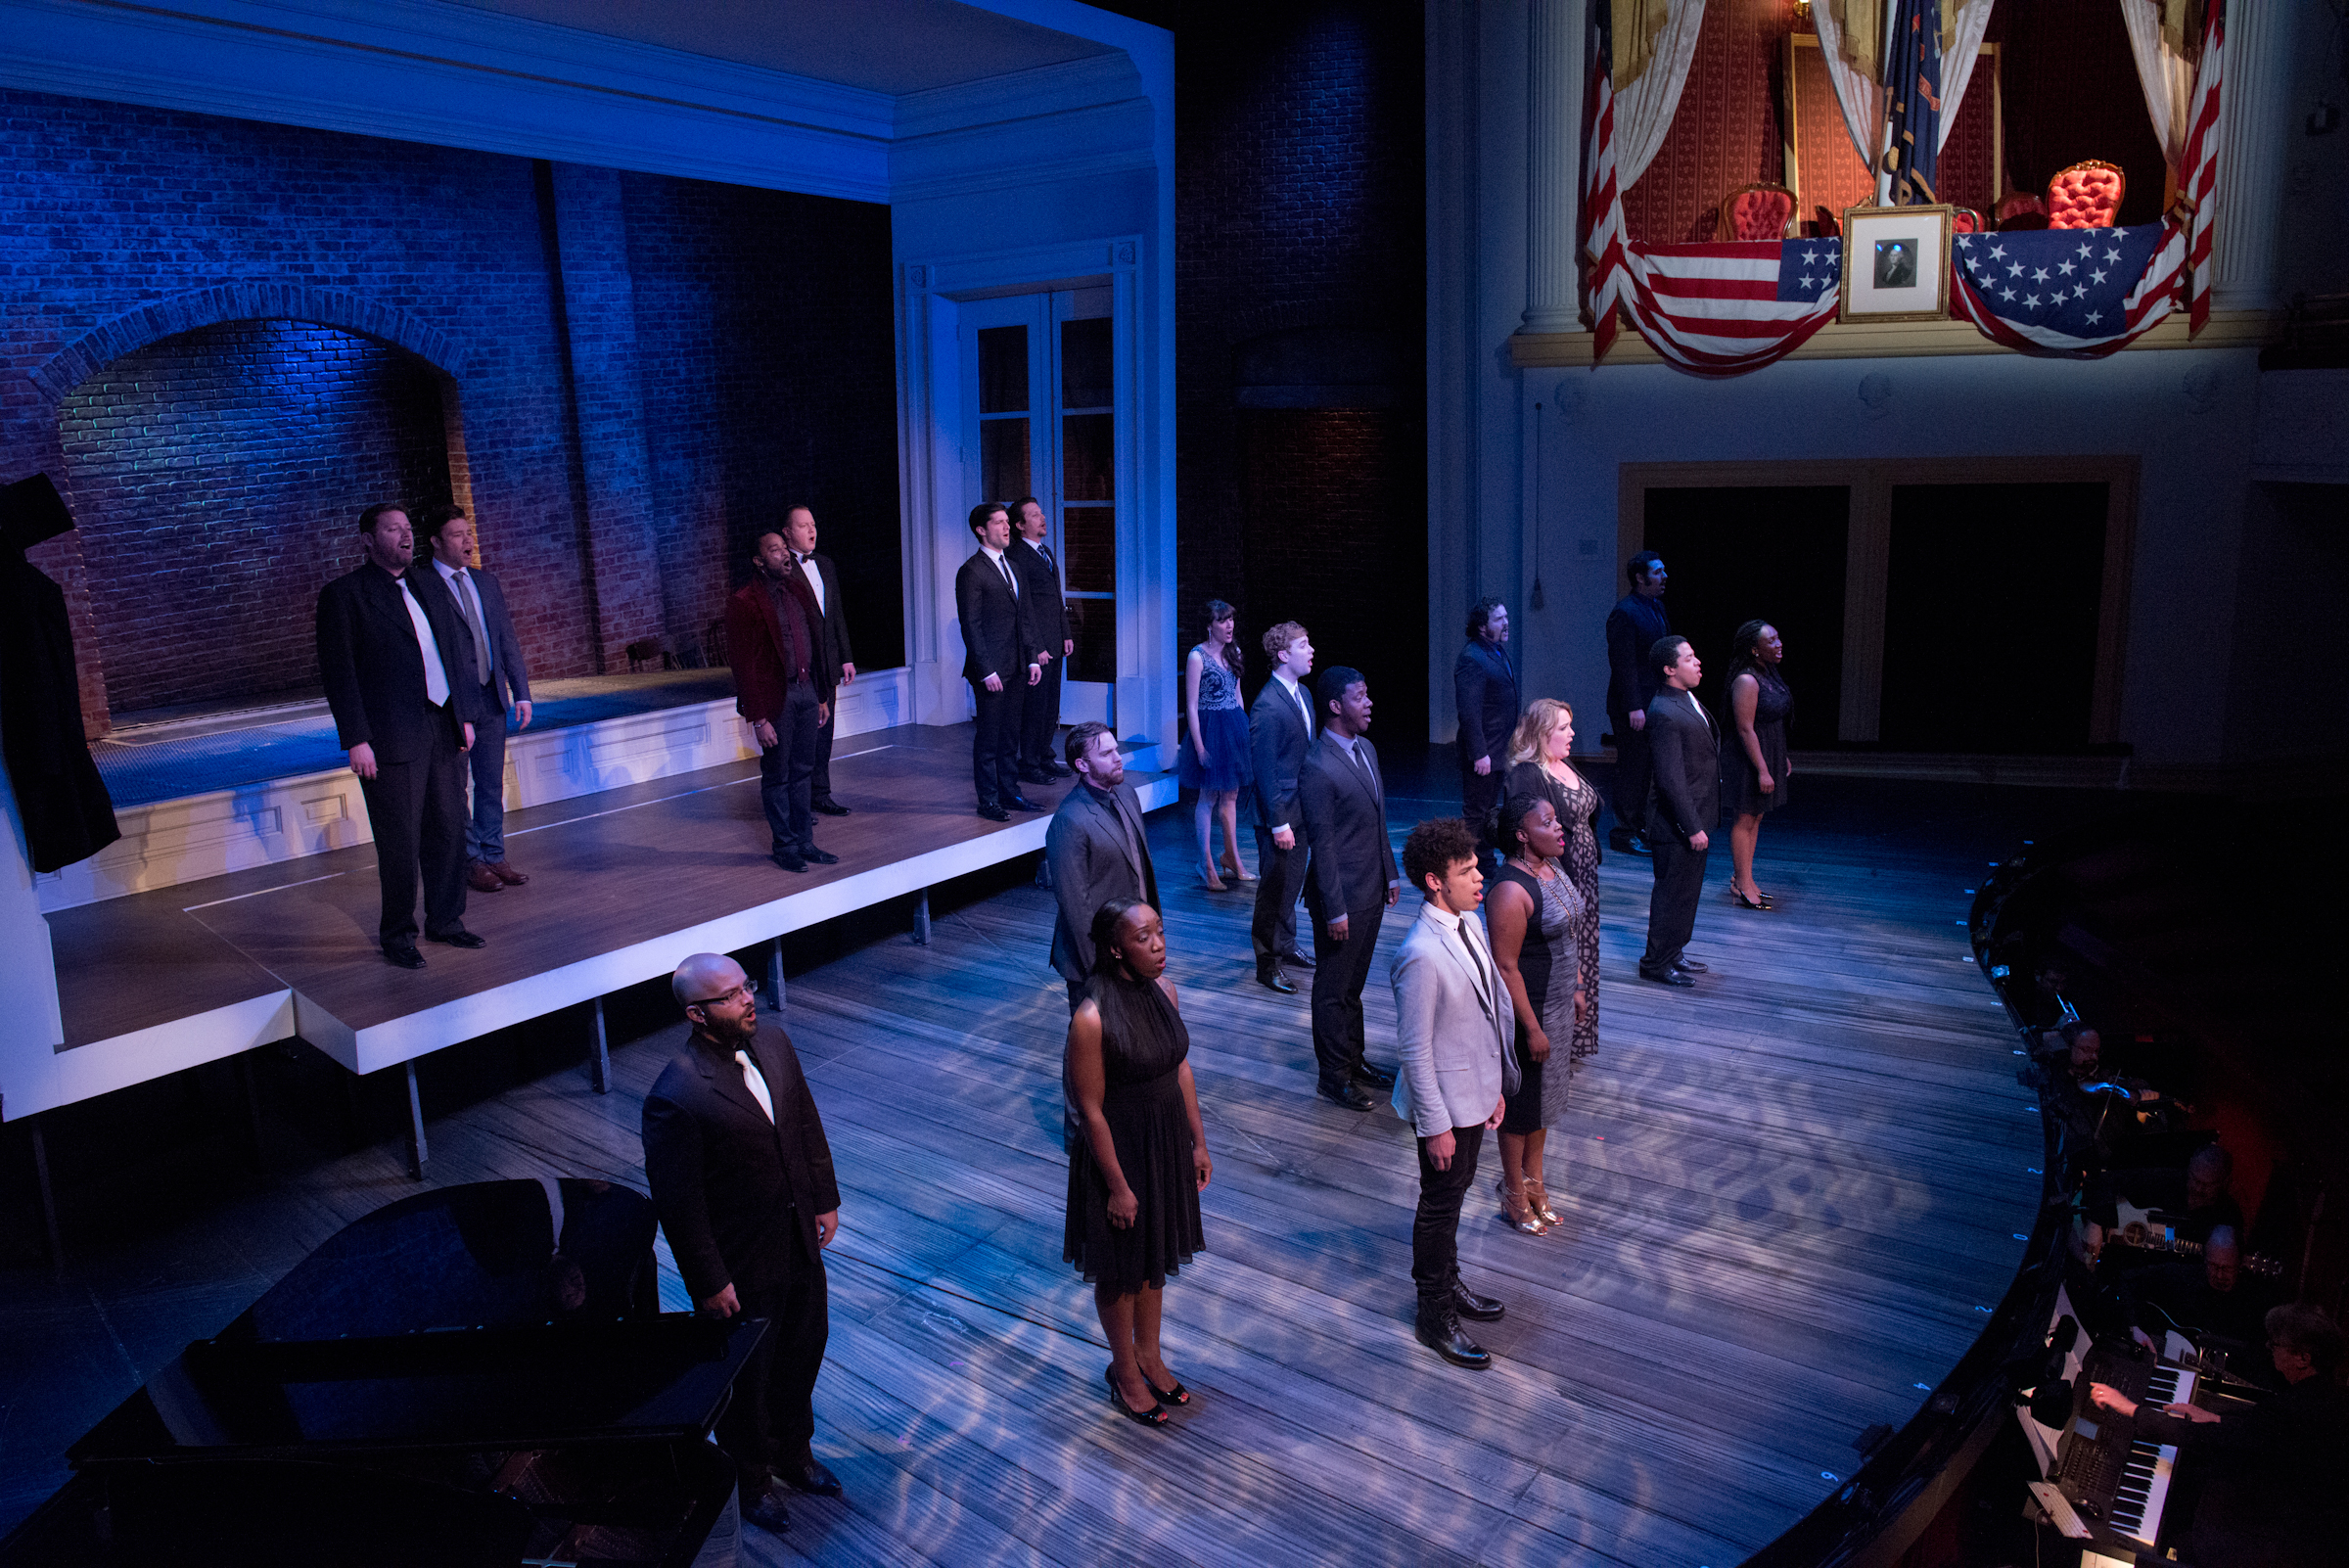 A dozen actors in modern-day street clothes stand in staggered positions on the Ford's Theatre stage. They are illuminated with a moody blue light as they look out toward the hundreds of people seated in the audience. Above the actors on stage and to the right is the Presidential Box, draped with yellow curtains and it's white balcony draped with flags-- just as it was the night of Lincoln's assassination.